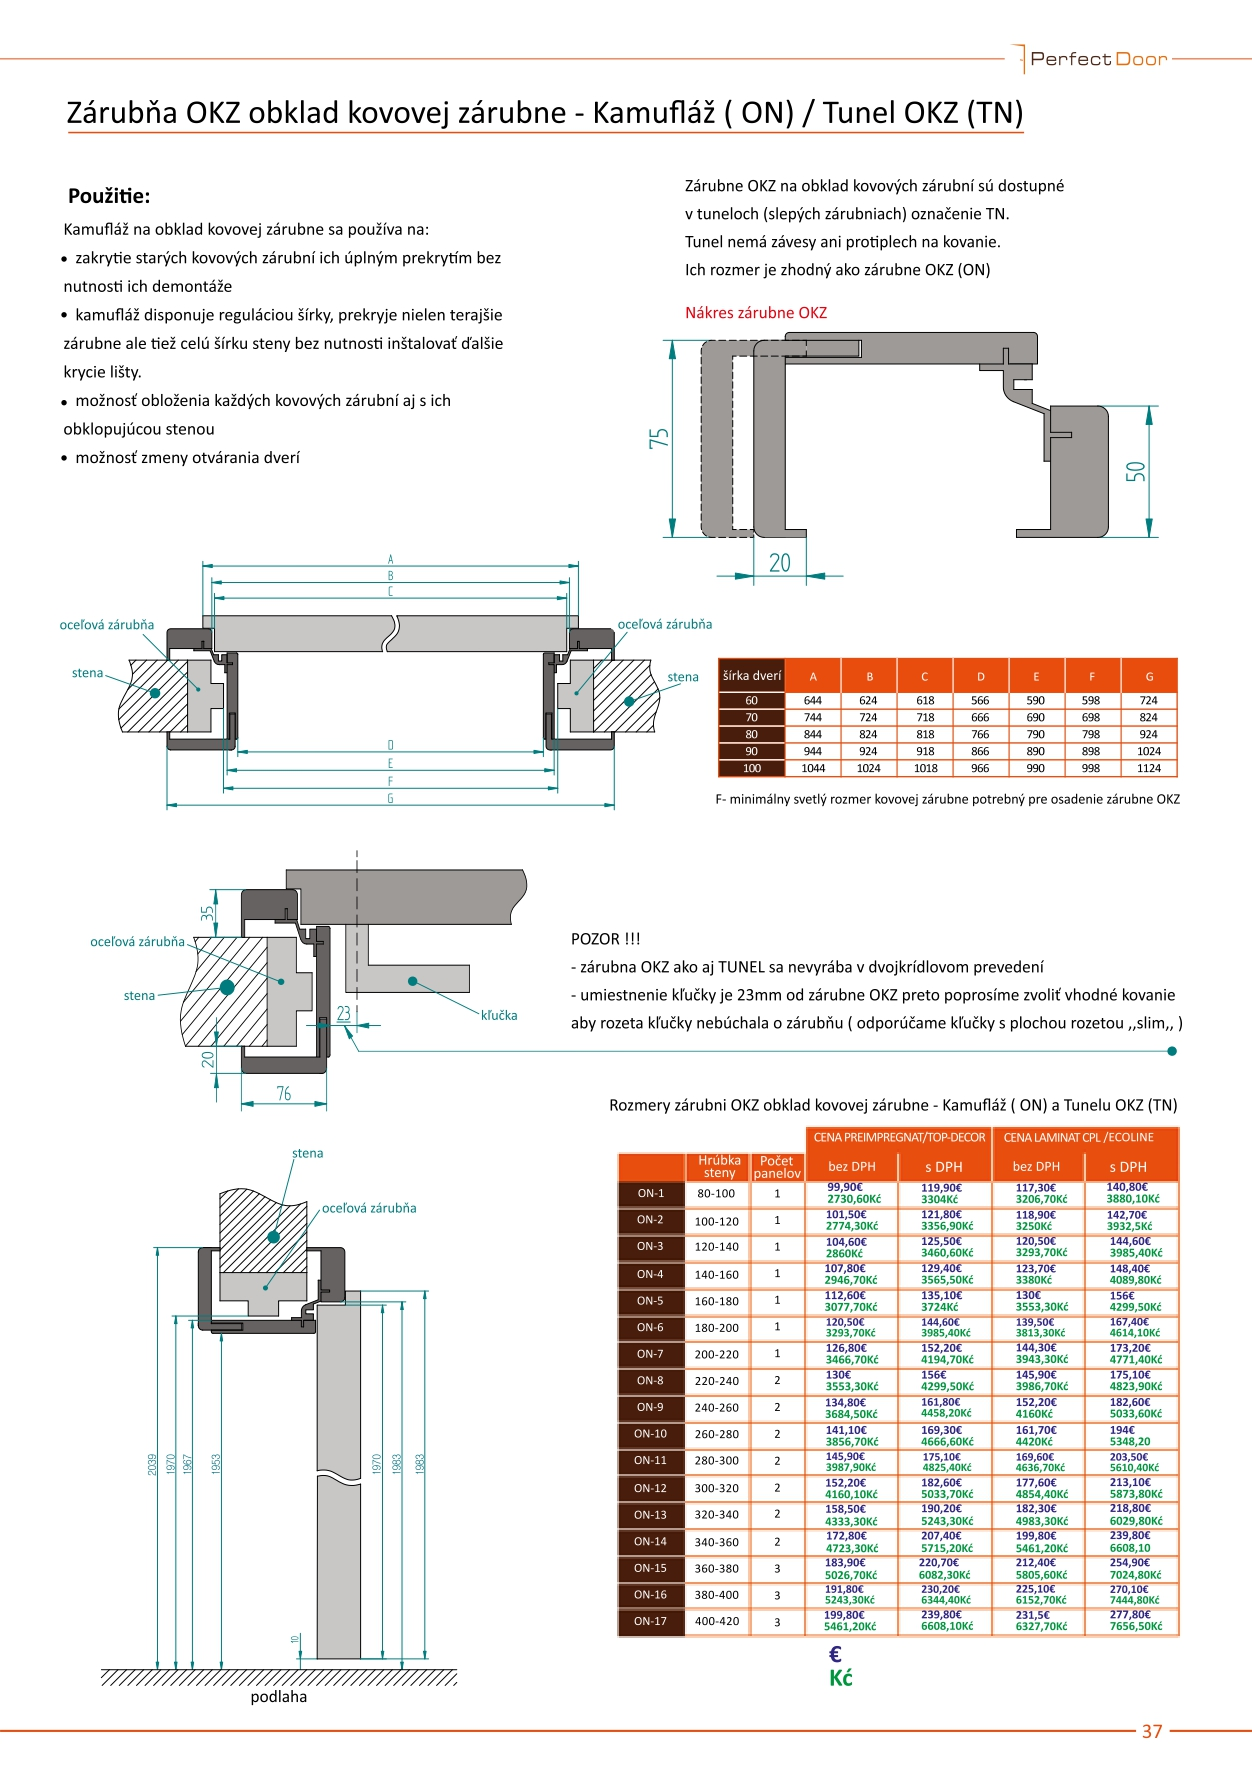 Perfectdoor katalog  1 2019 pages-to-jpg-0037